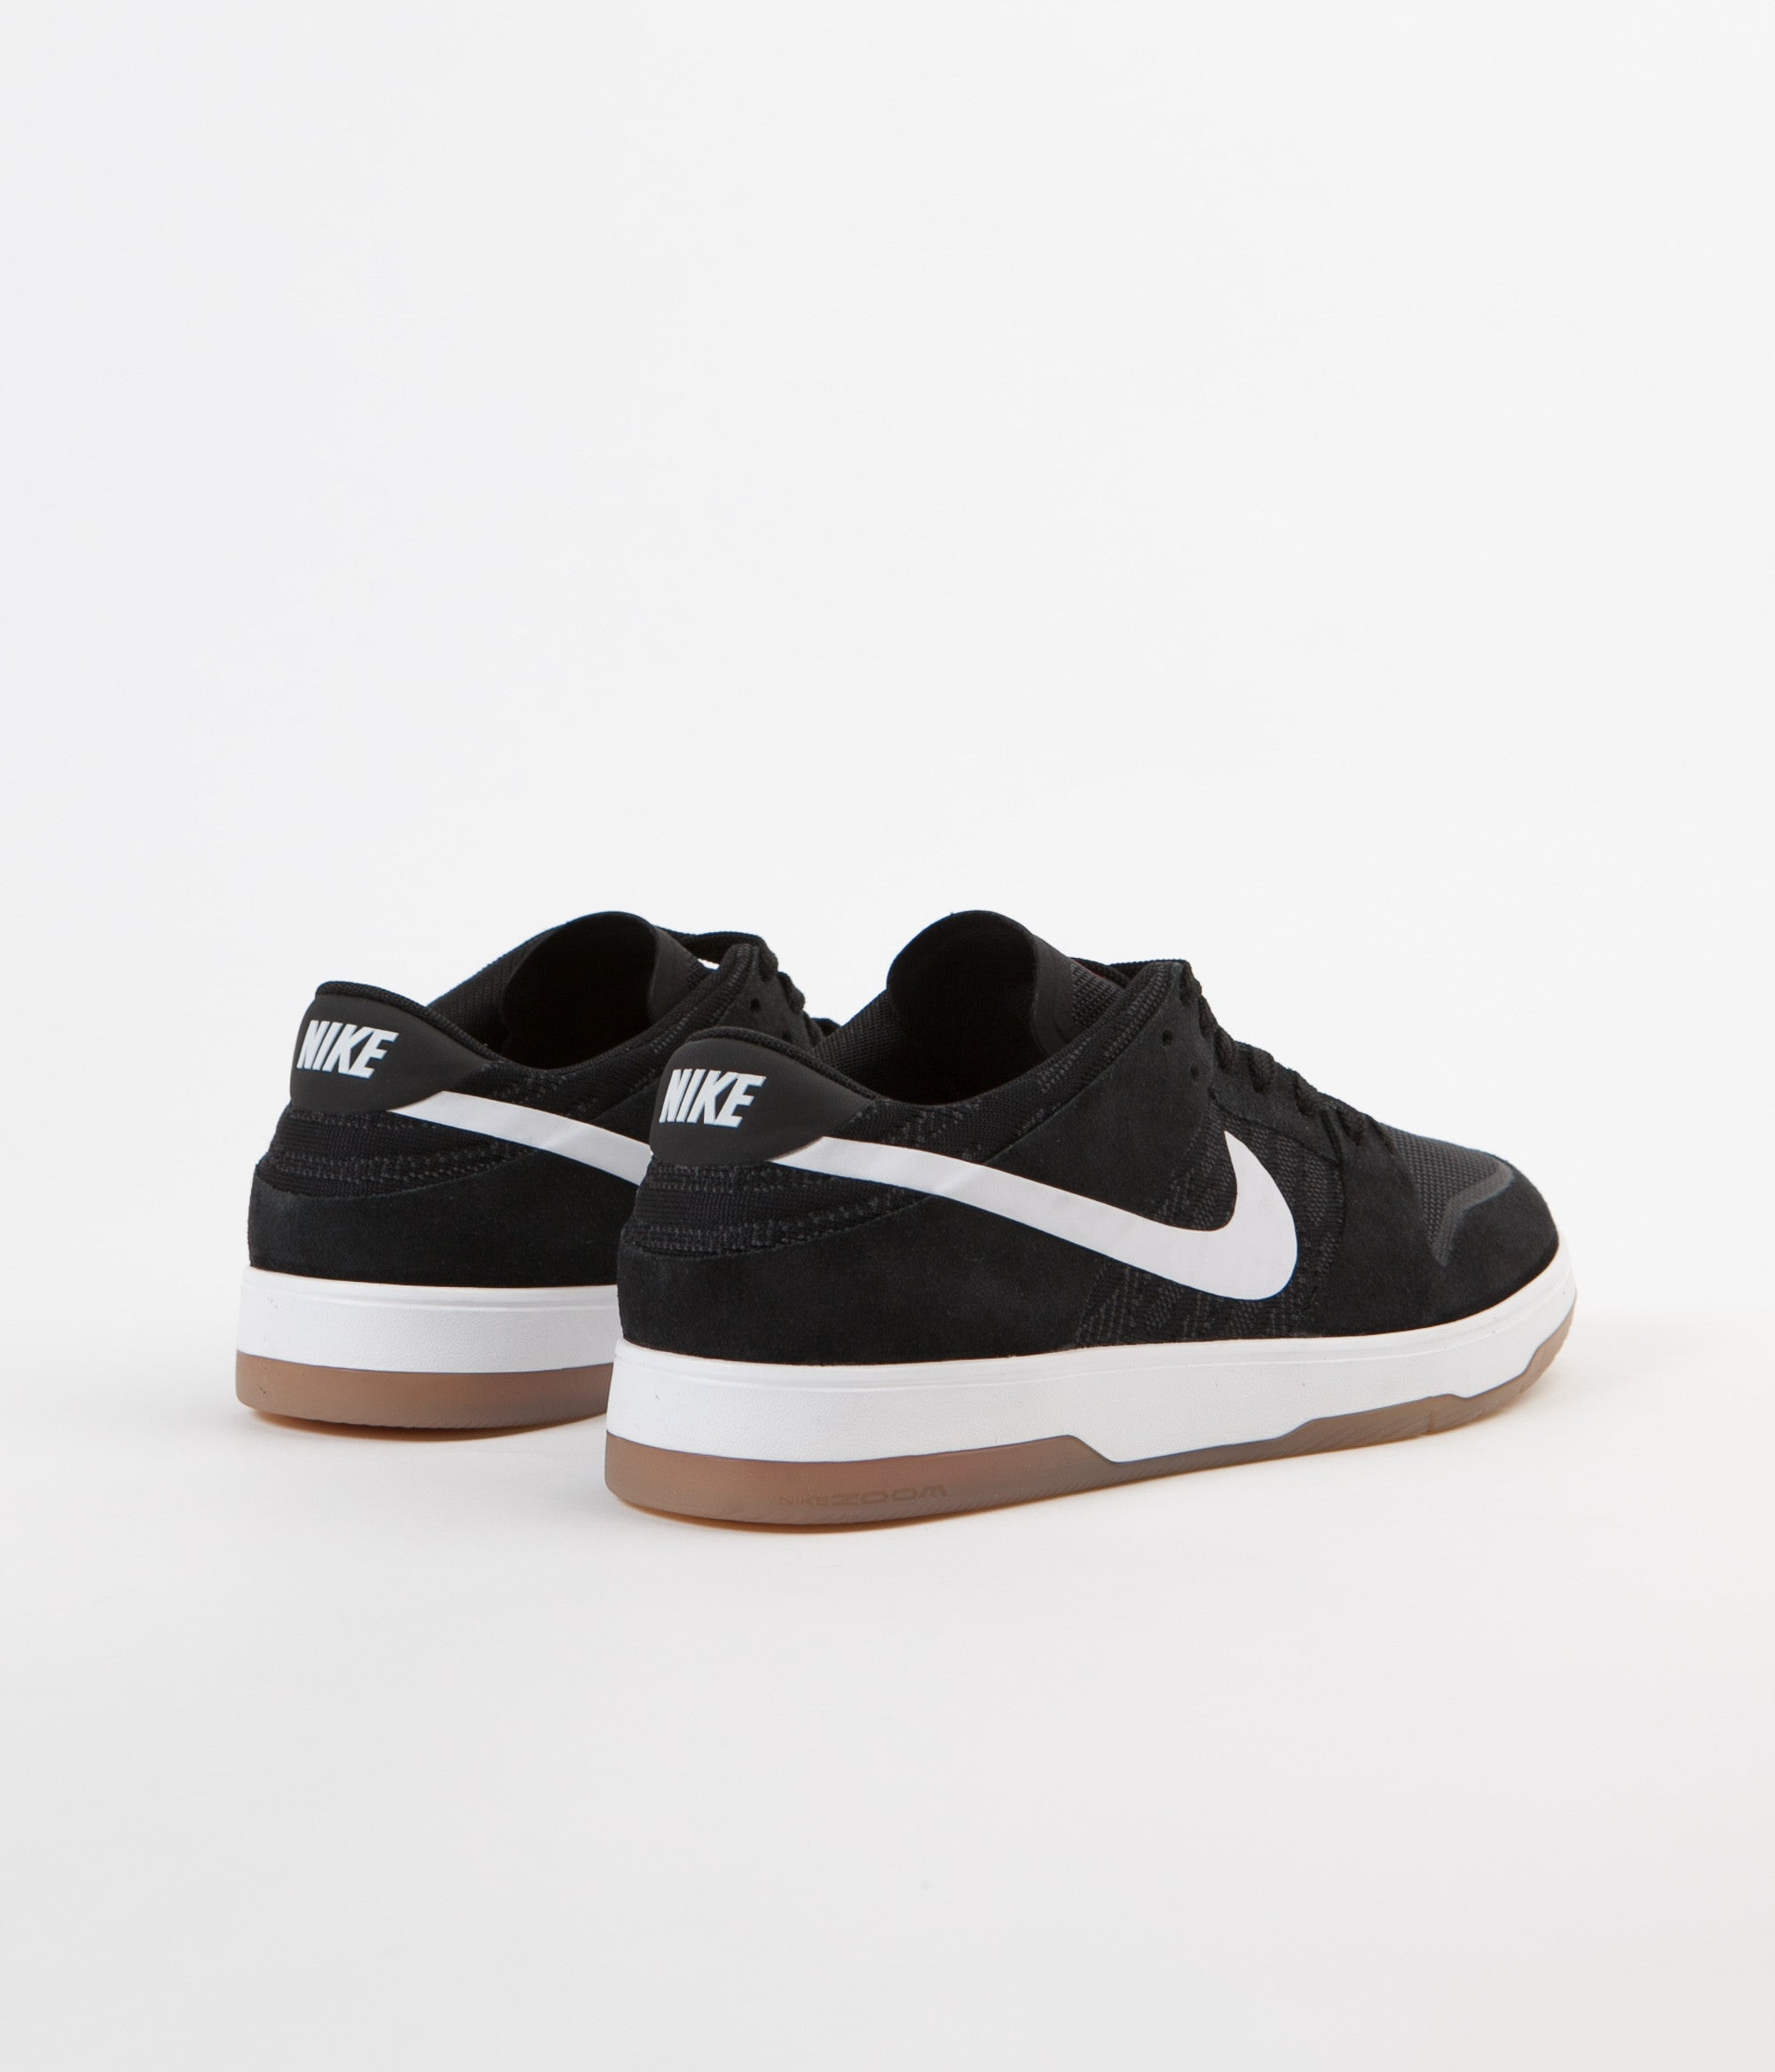 Nike SB Dunk Low Elite Shoes - Black / White - Gum Light Brown - Anthracite